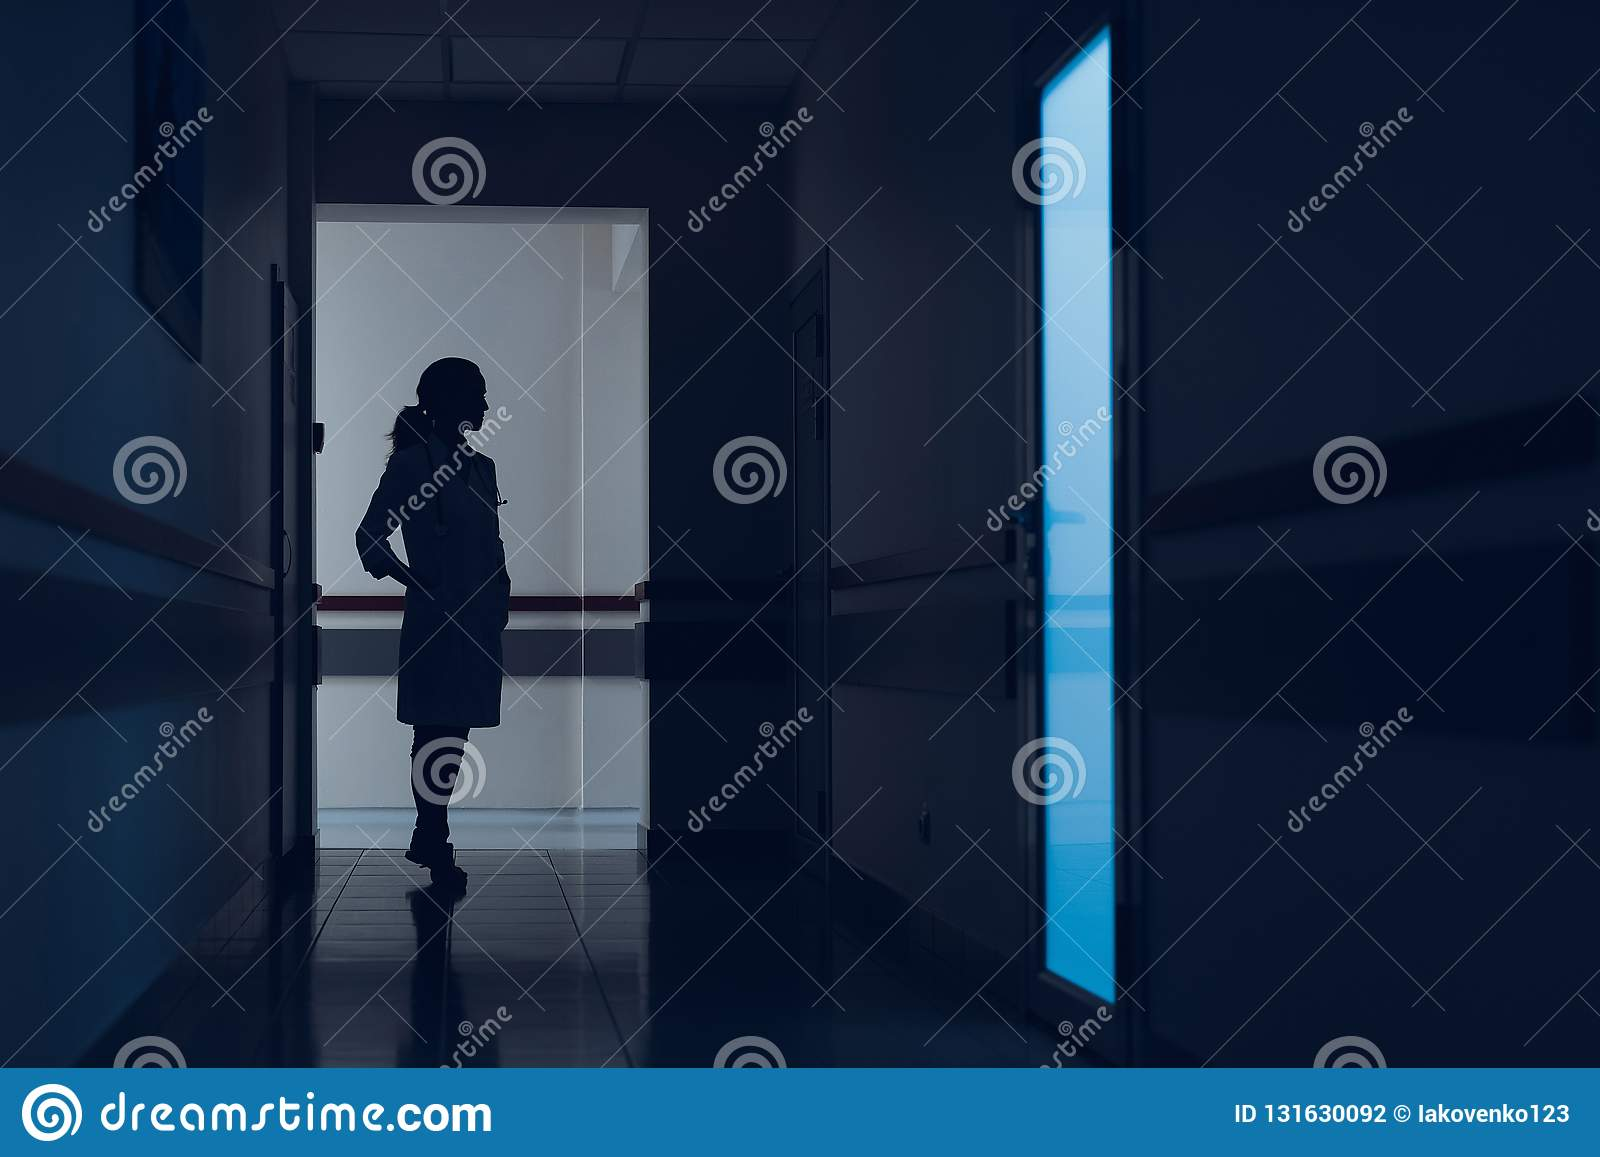 Female therapist is standing in hallway in the hospital